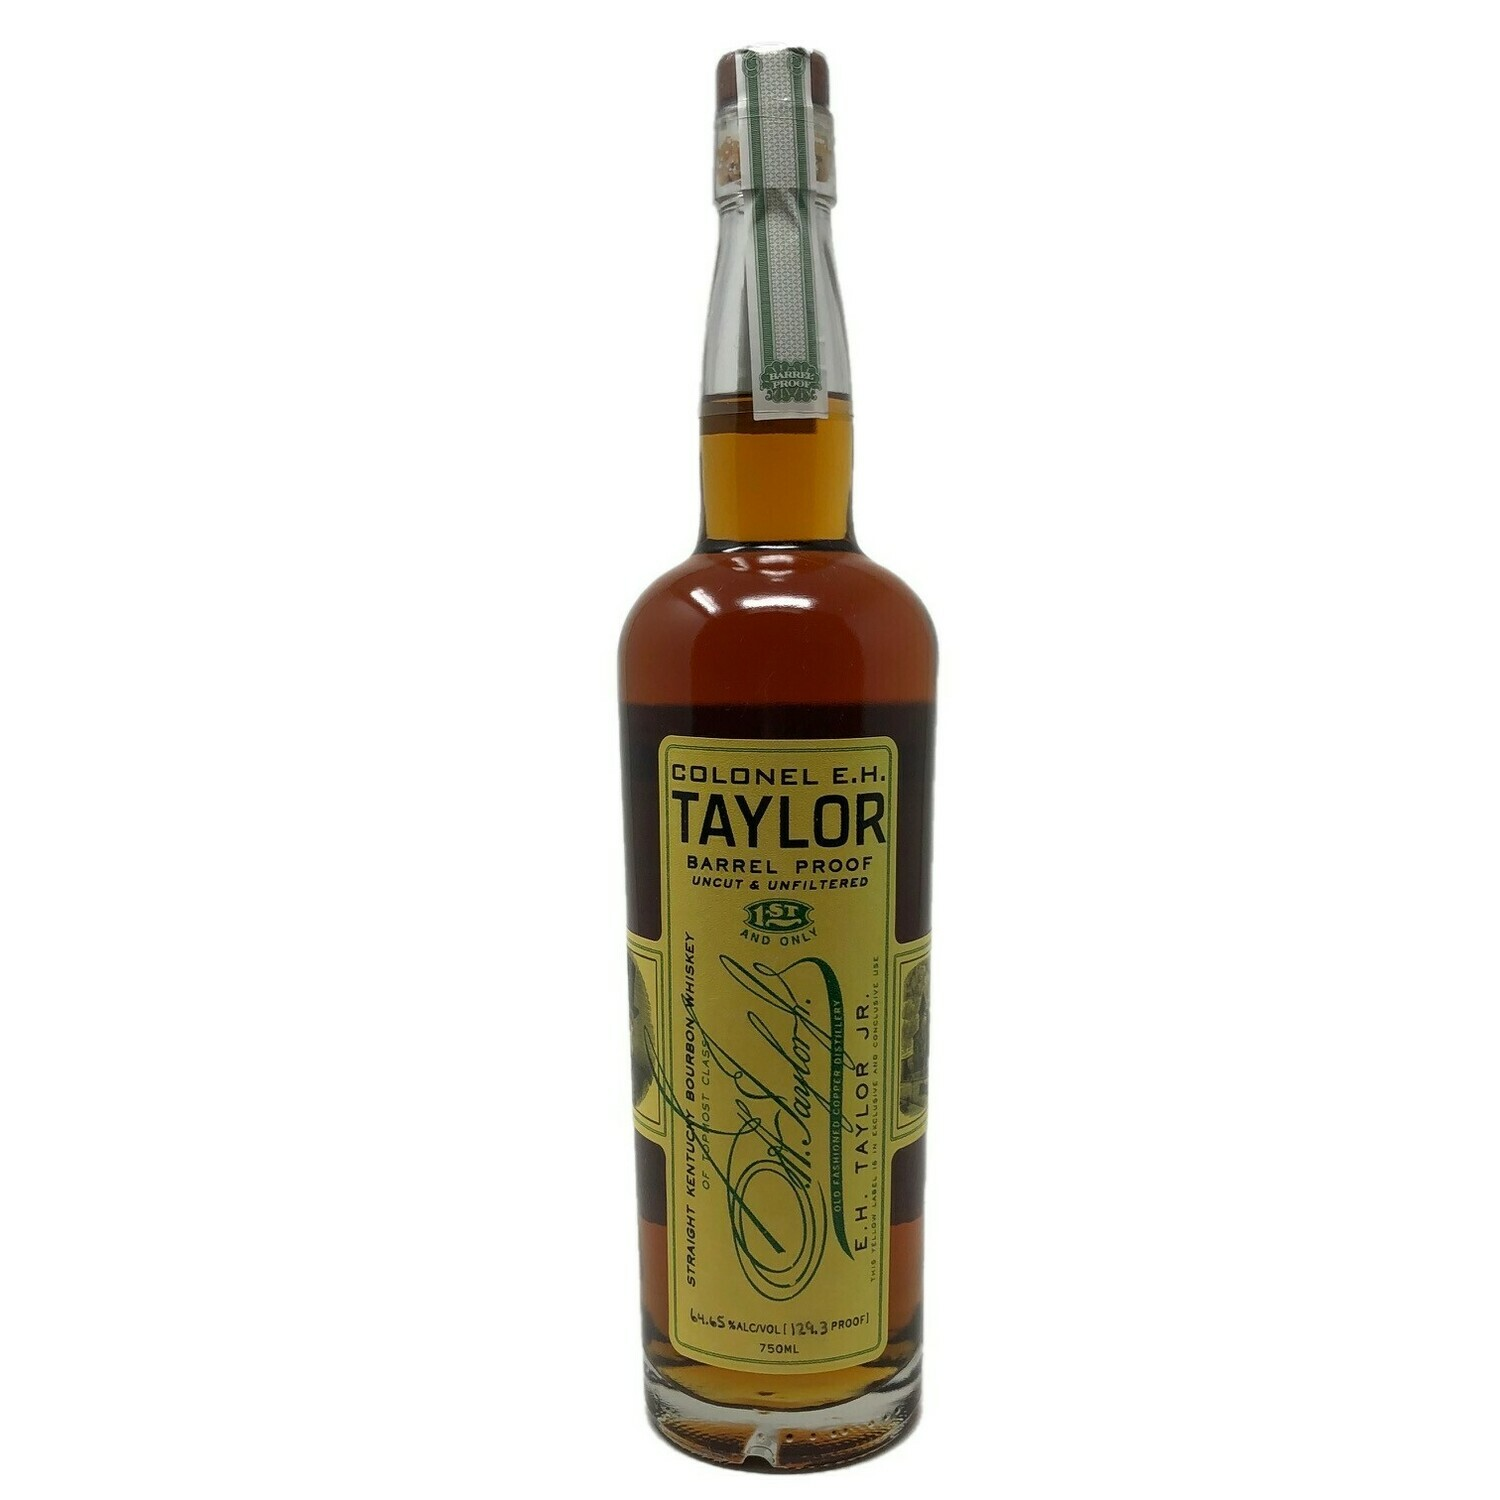 Colonel E.H. Taylor Barrel Proof Uncut & Unfiltered Straight Kentucky Bourbon Whiskey 129.3 Proof